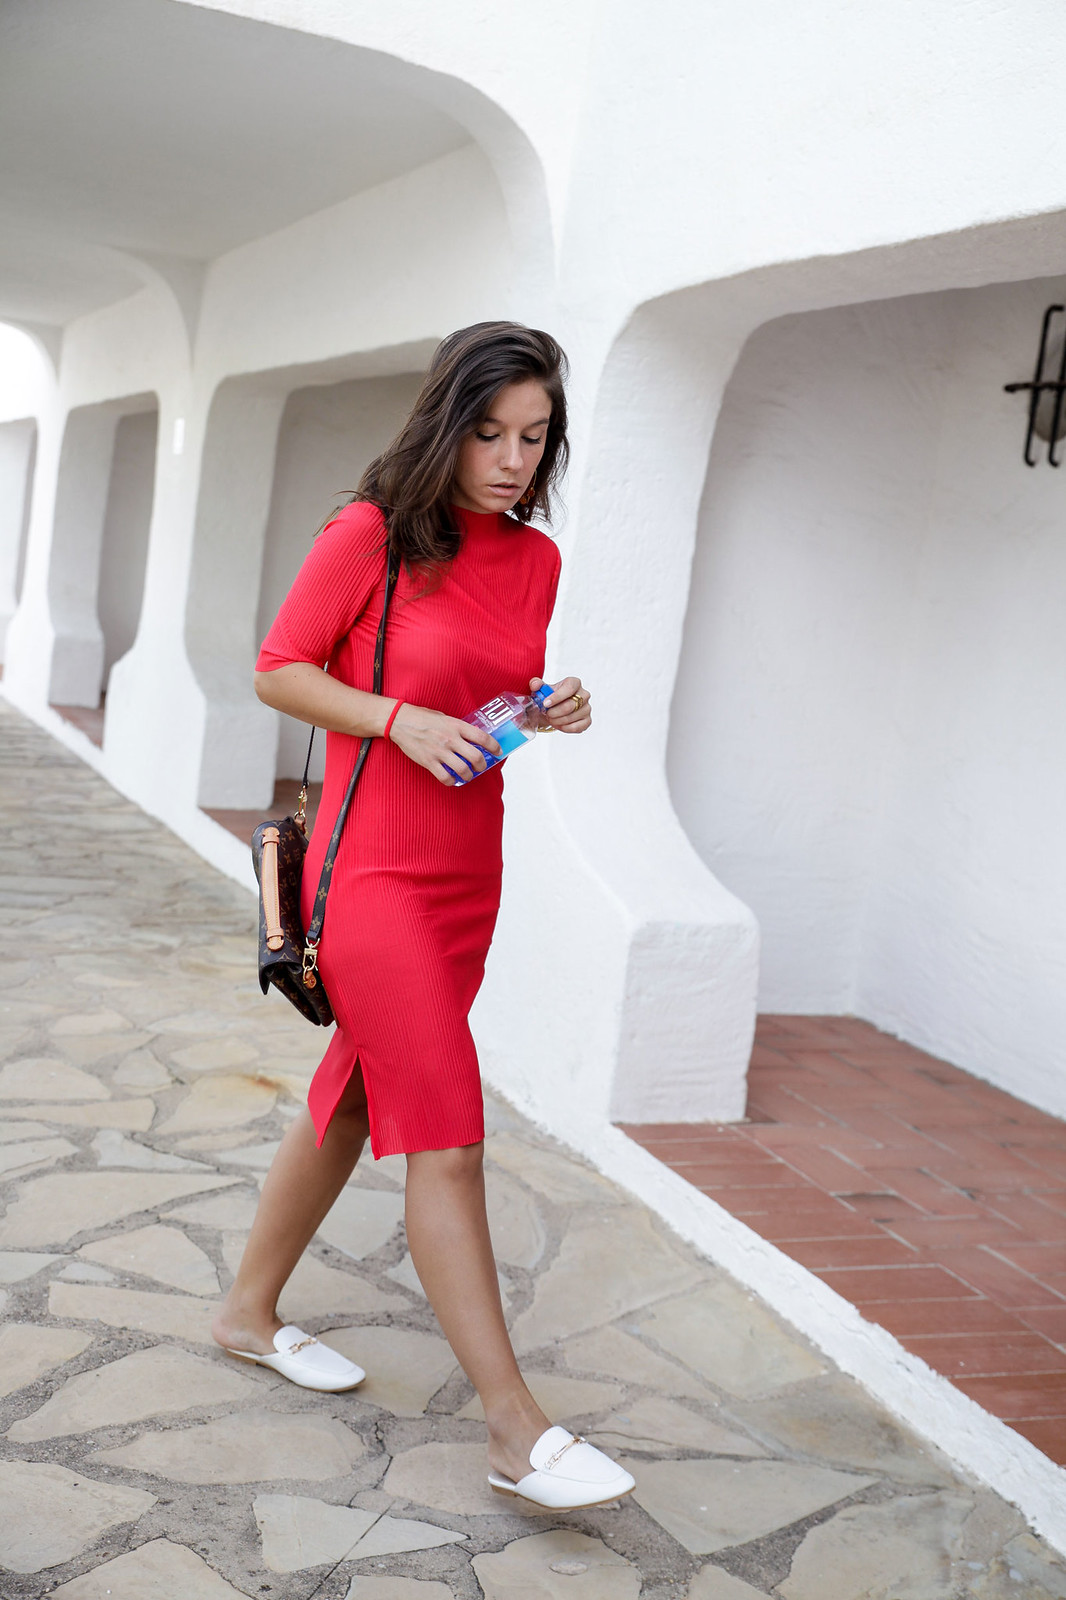 01_red_dress_nakd_code_promocional_off_blogger_theguestgirl_lady_in_red_glam_style_barcelona_vestido_rojo_perfecto